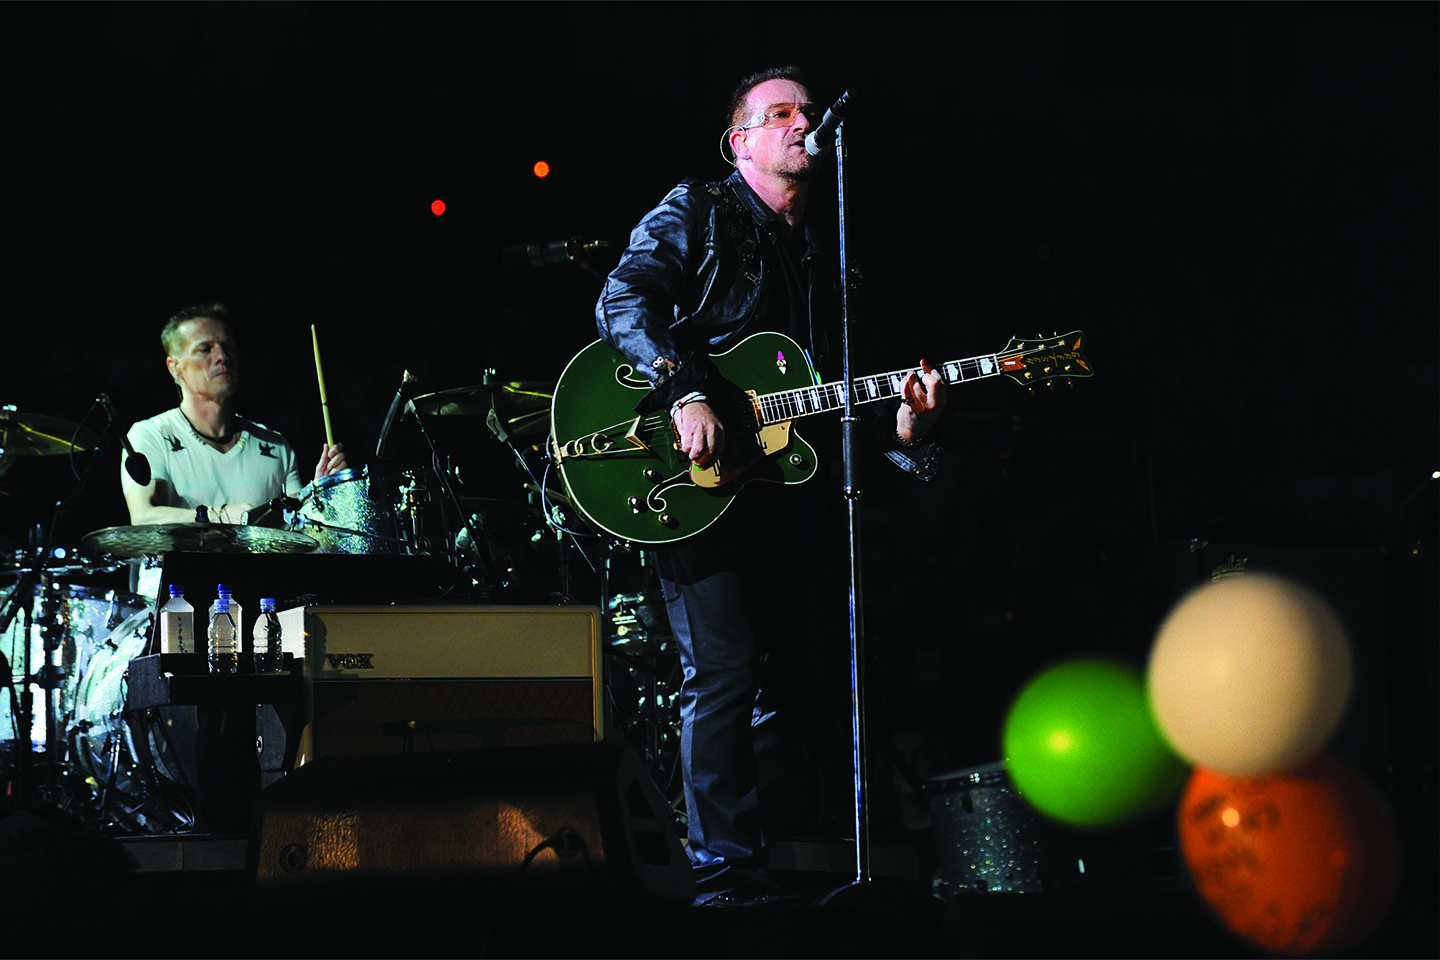 The band U2 performing